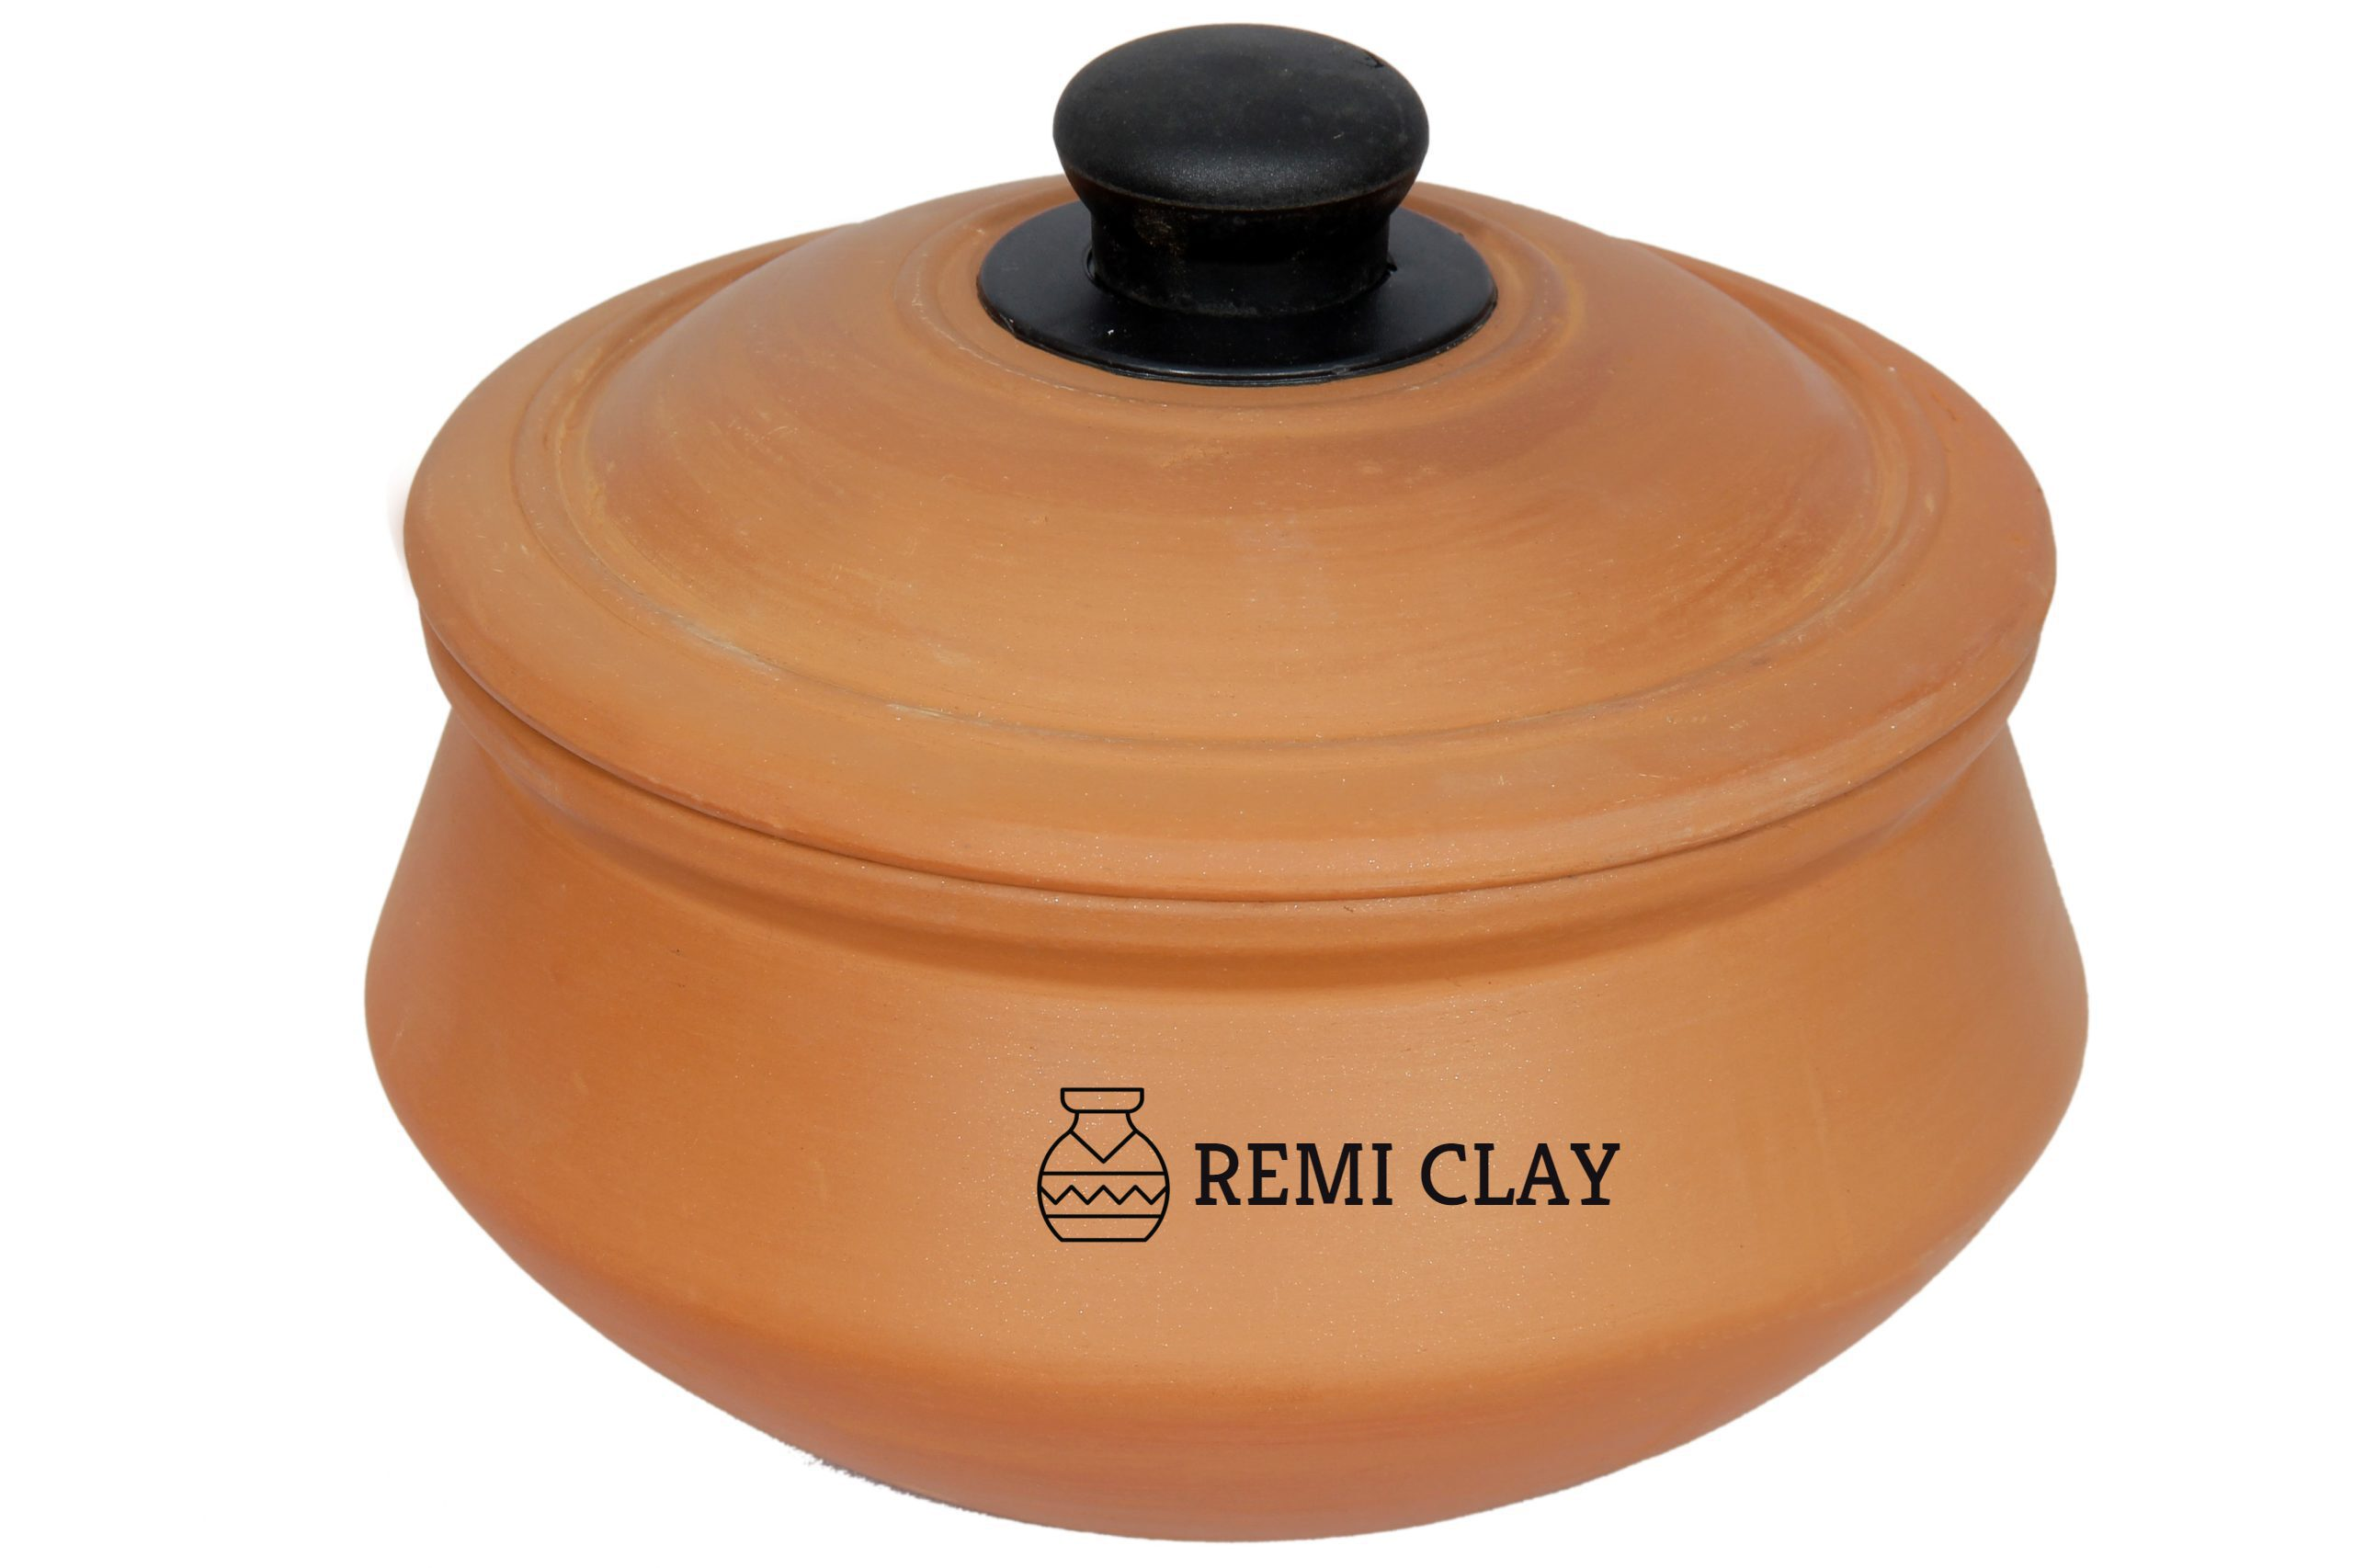 Clay-briyani-handi-with-mud-lid